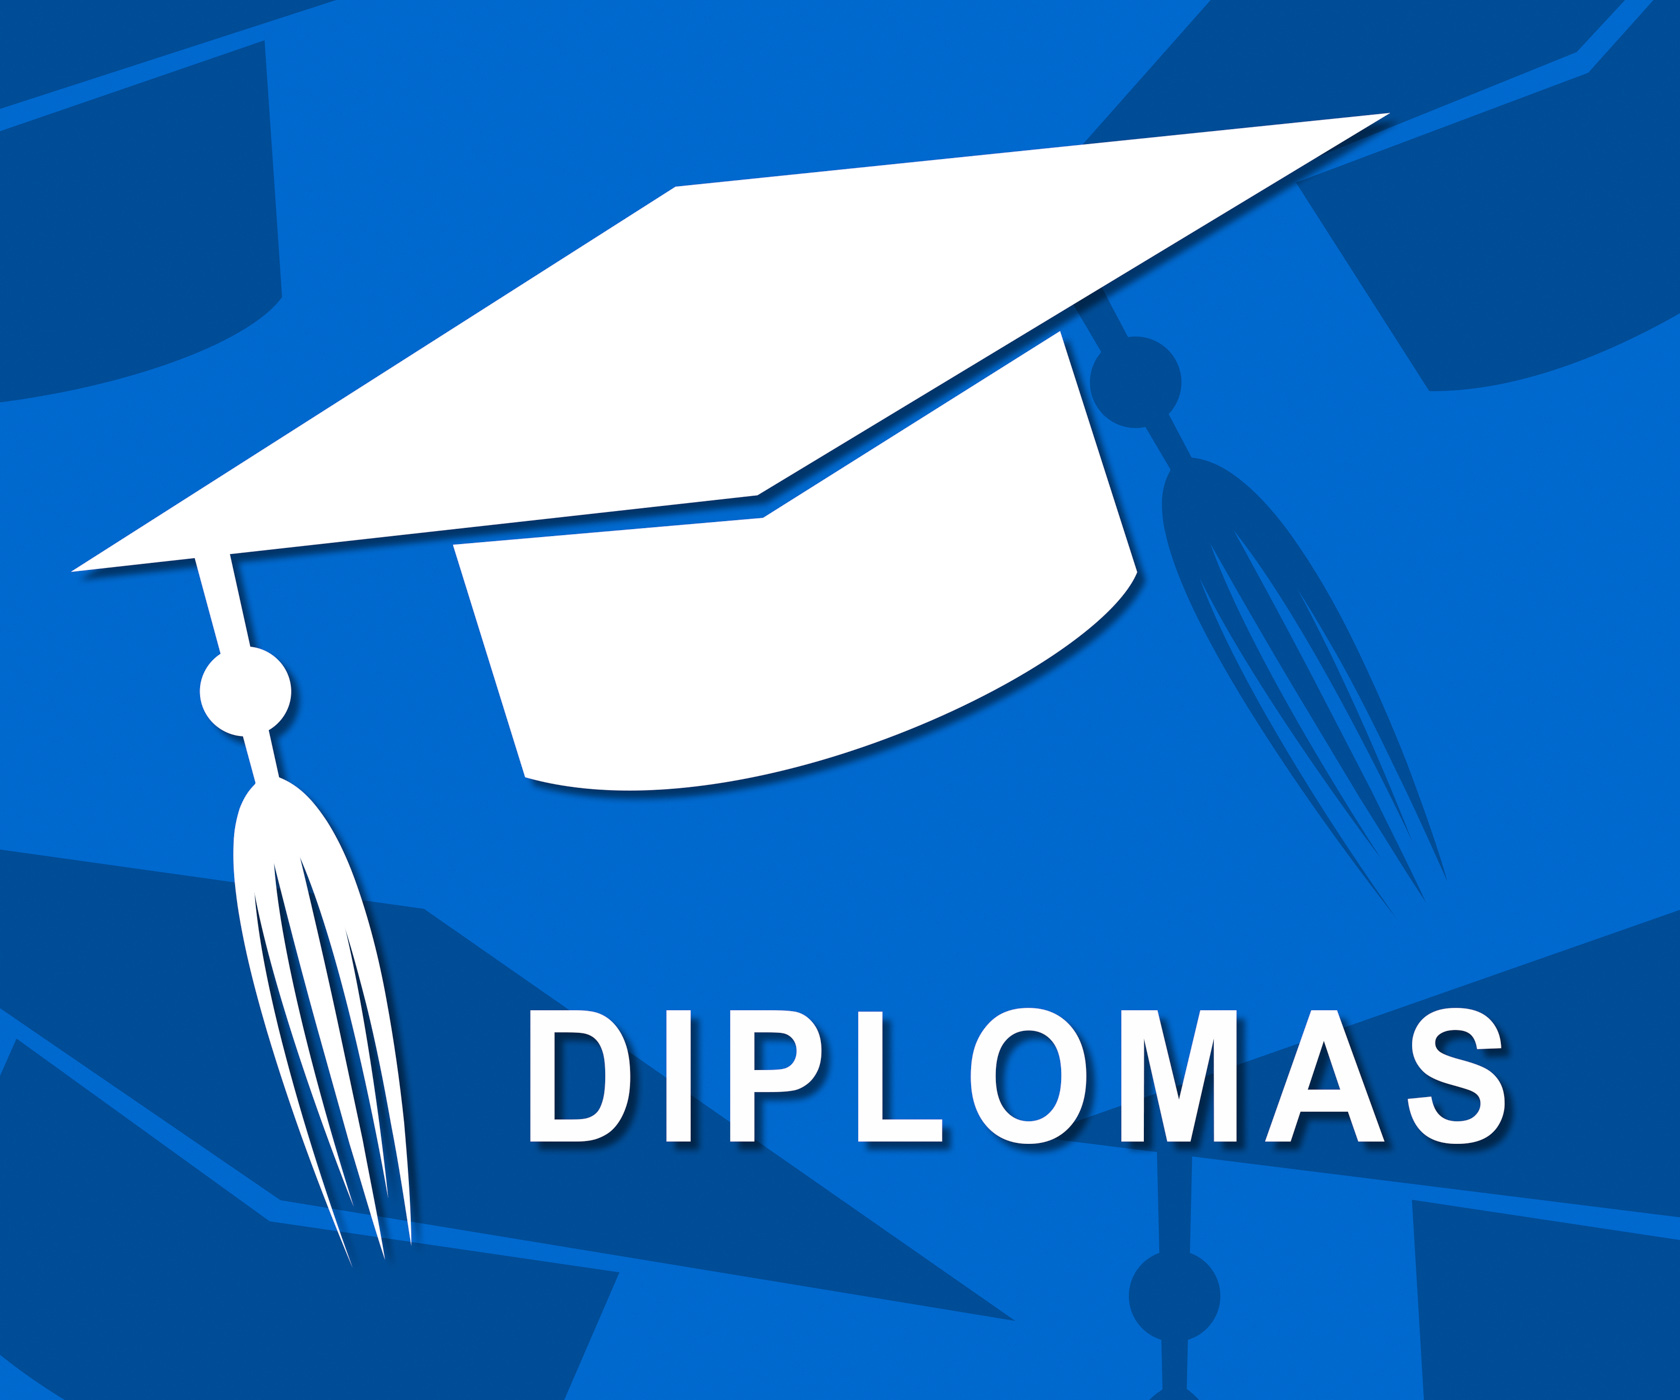 Diplomas Mortarboard Shows Qualifications Degrees And University, Academic, Graduating, Qualifications, Qualification, HQ Photo